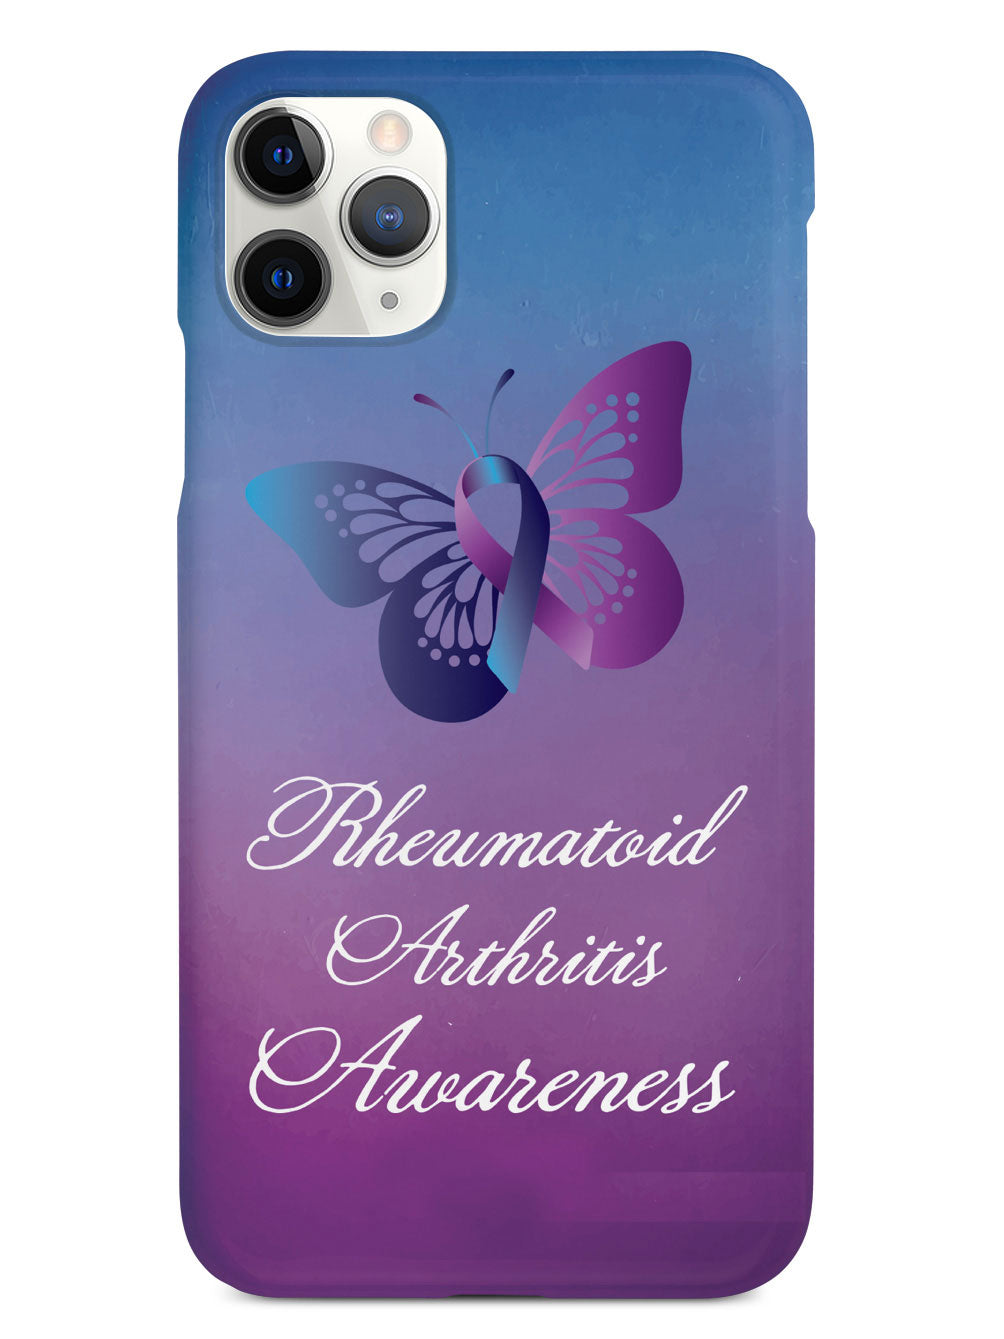 Rheumatoid Arthritis Awareness Case